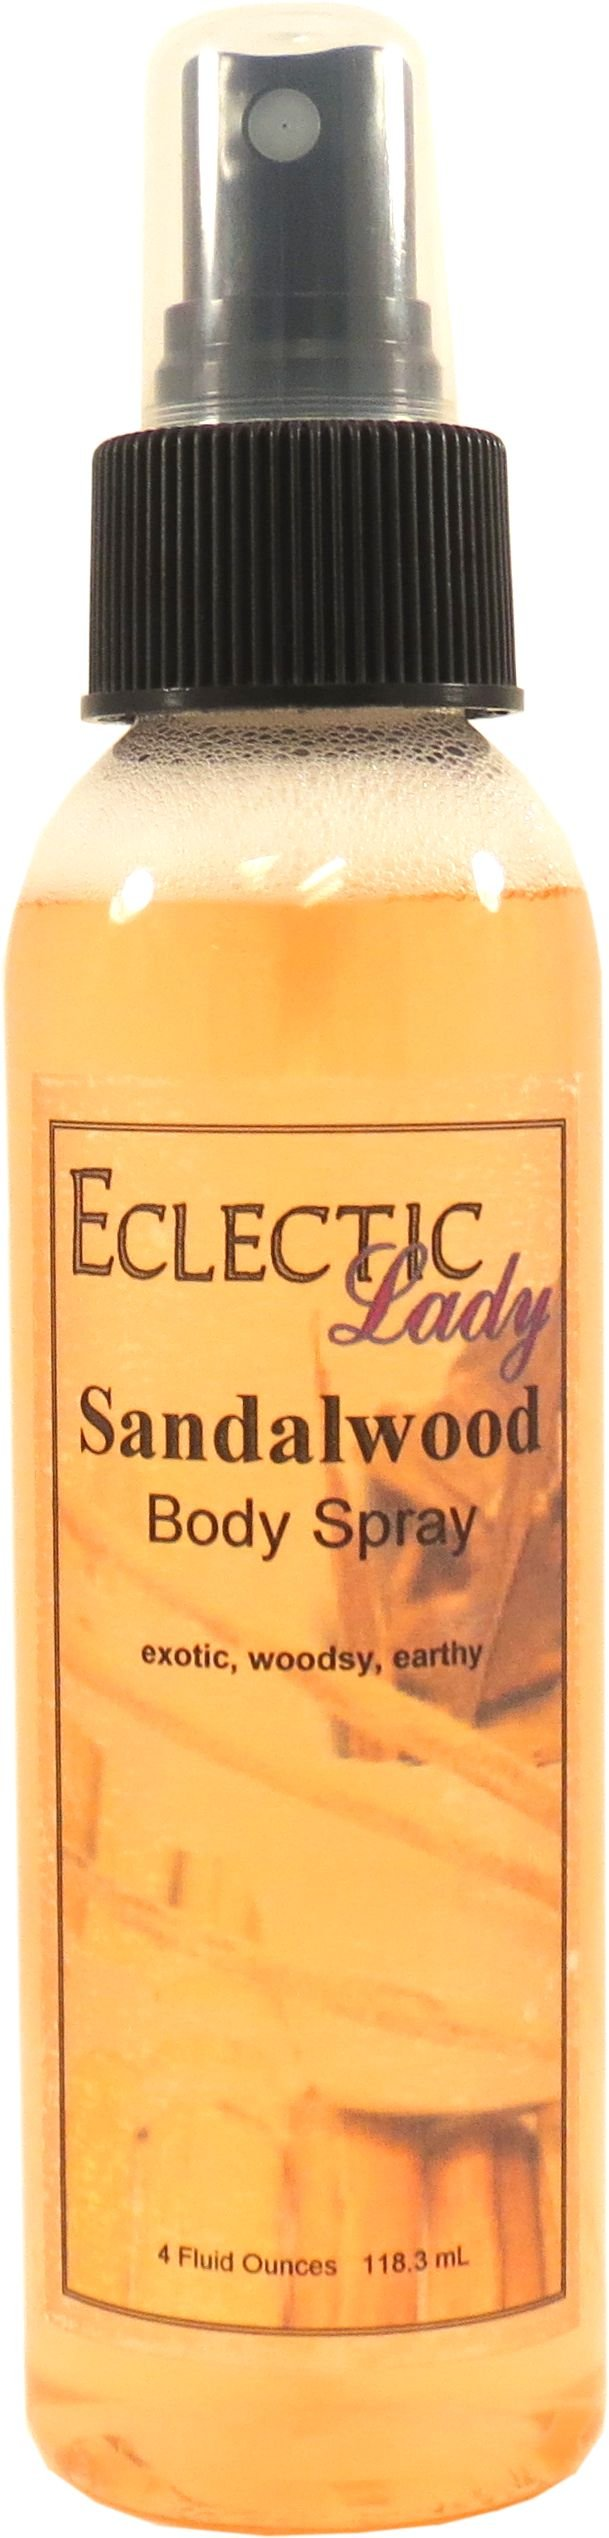 Sandalwood Body Spray, 4 ounces